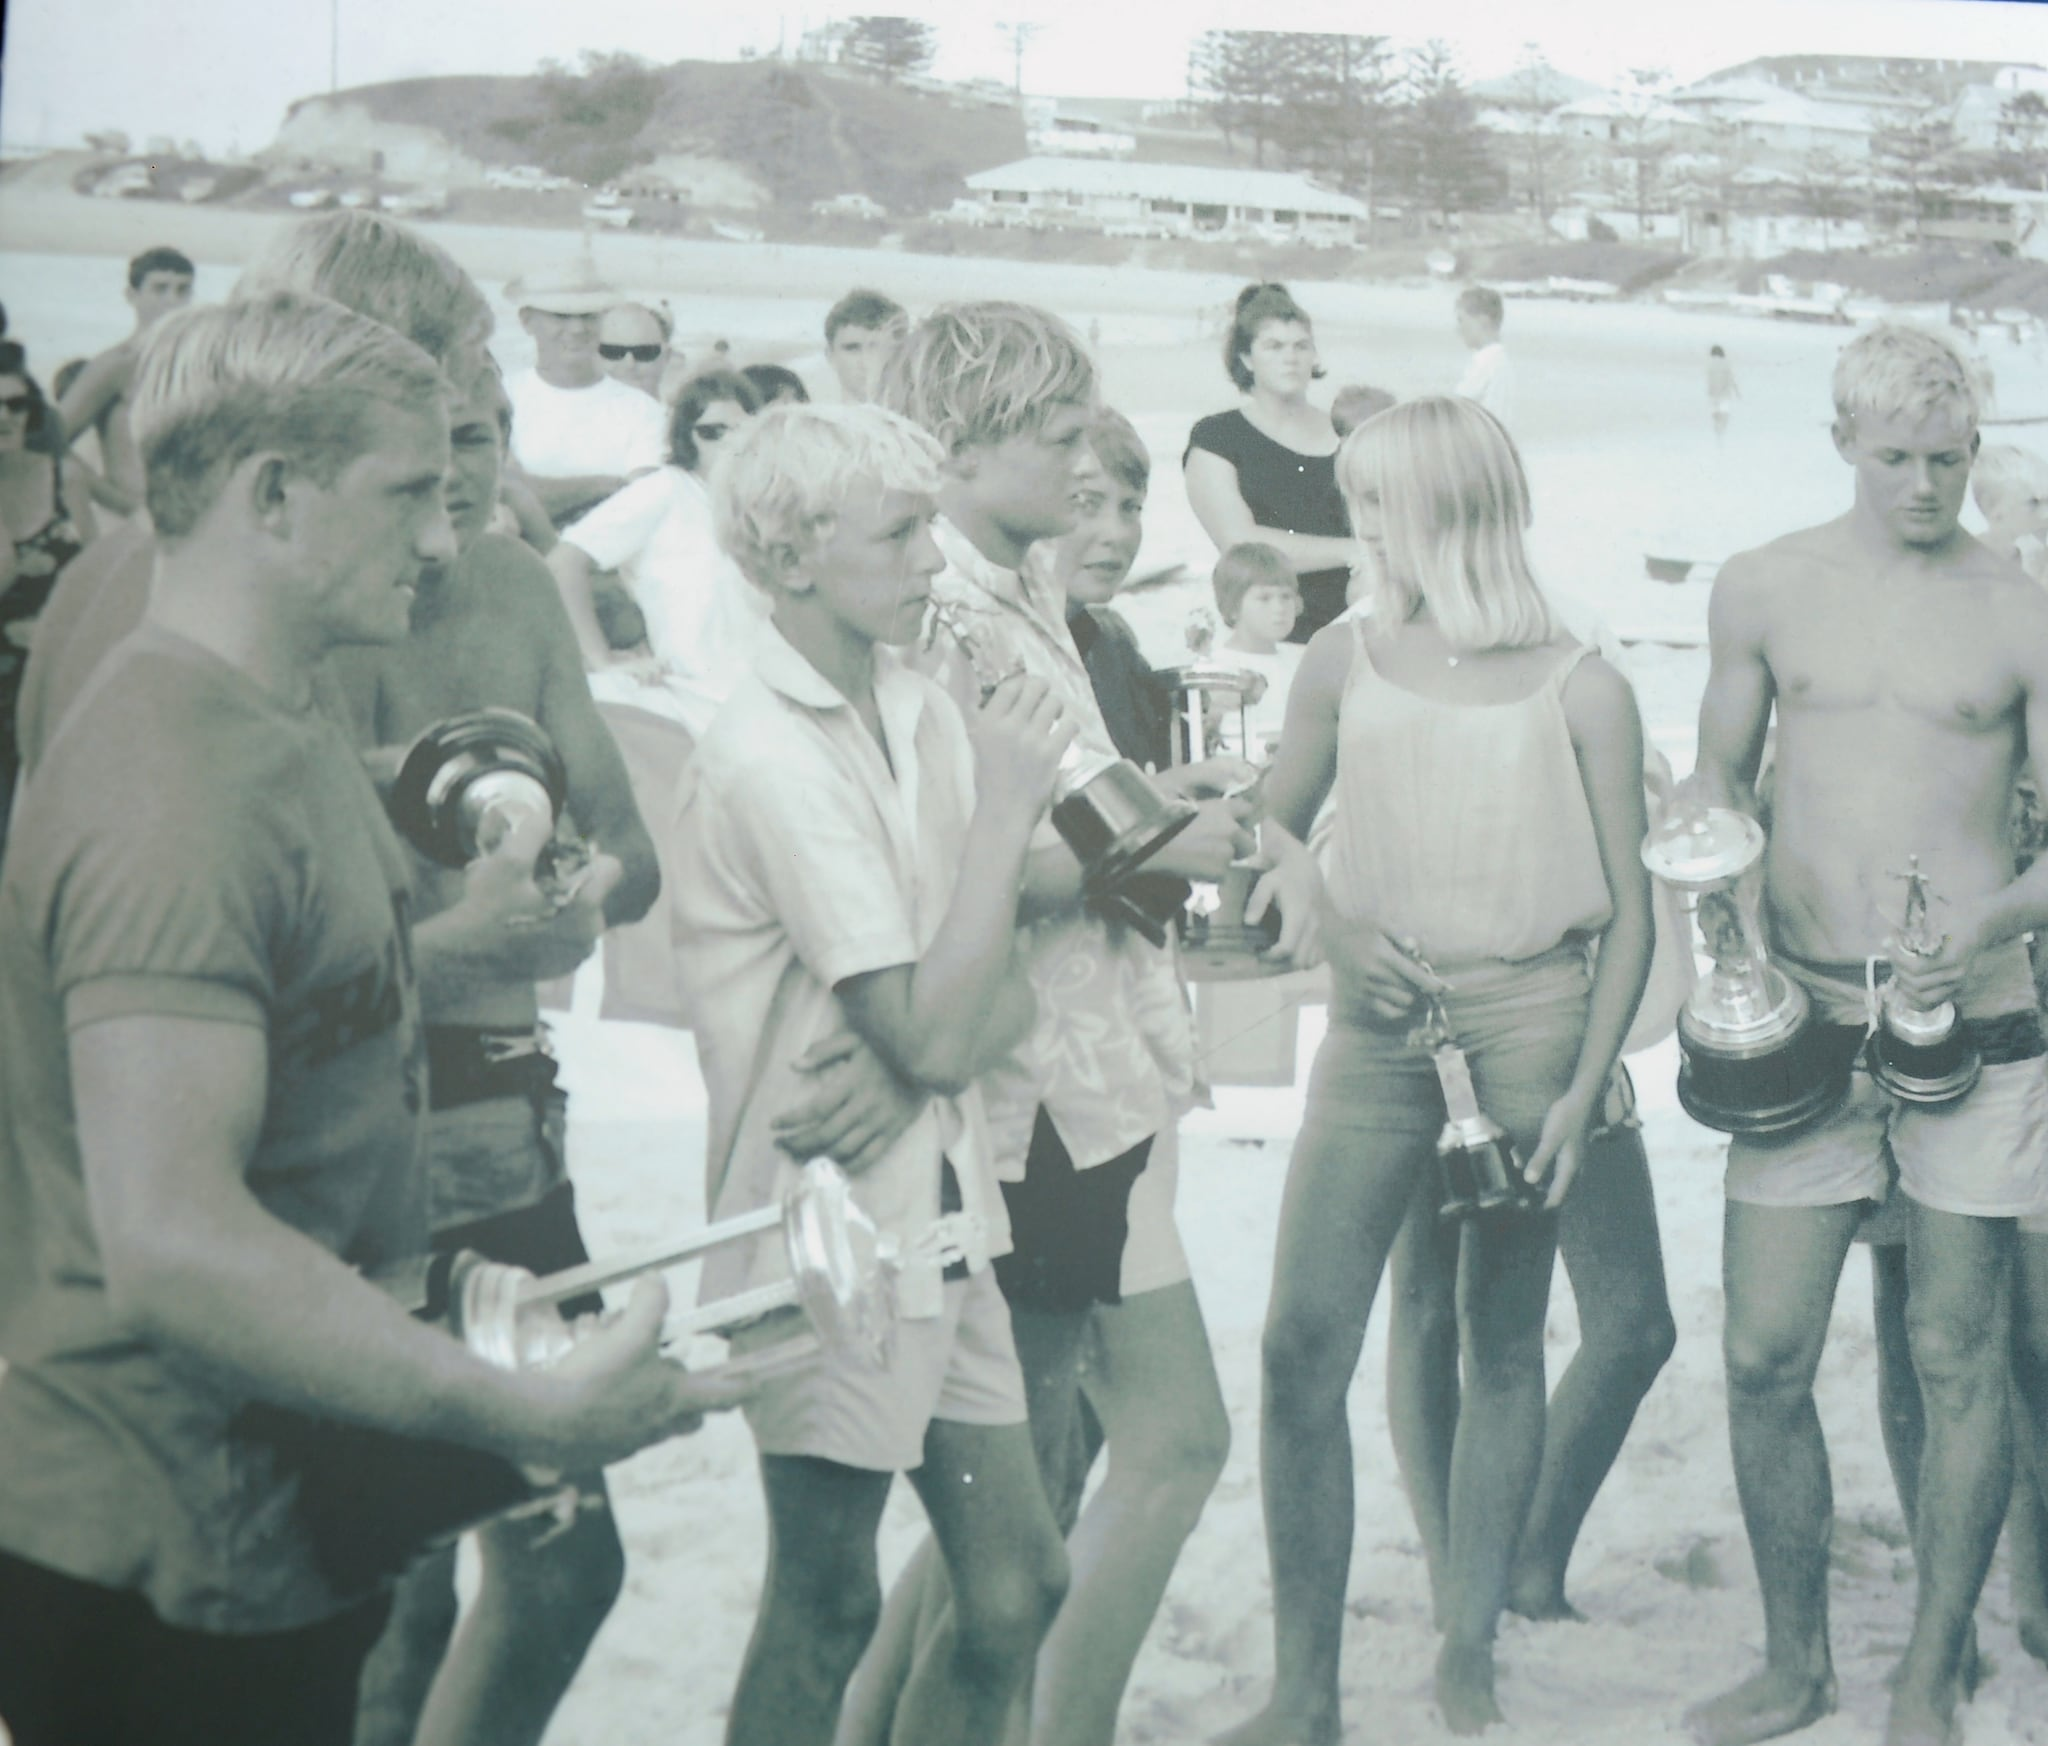 In 1964, a committee of nine met in the lounge of Kirra Beach to form the Australian Association of Queensland (now Surfing Queensland).